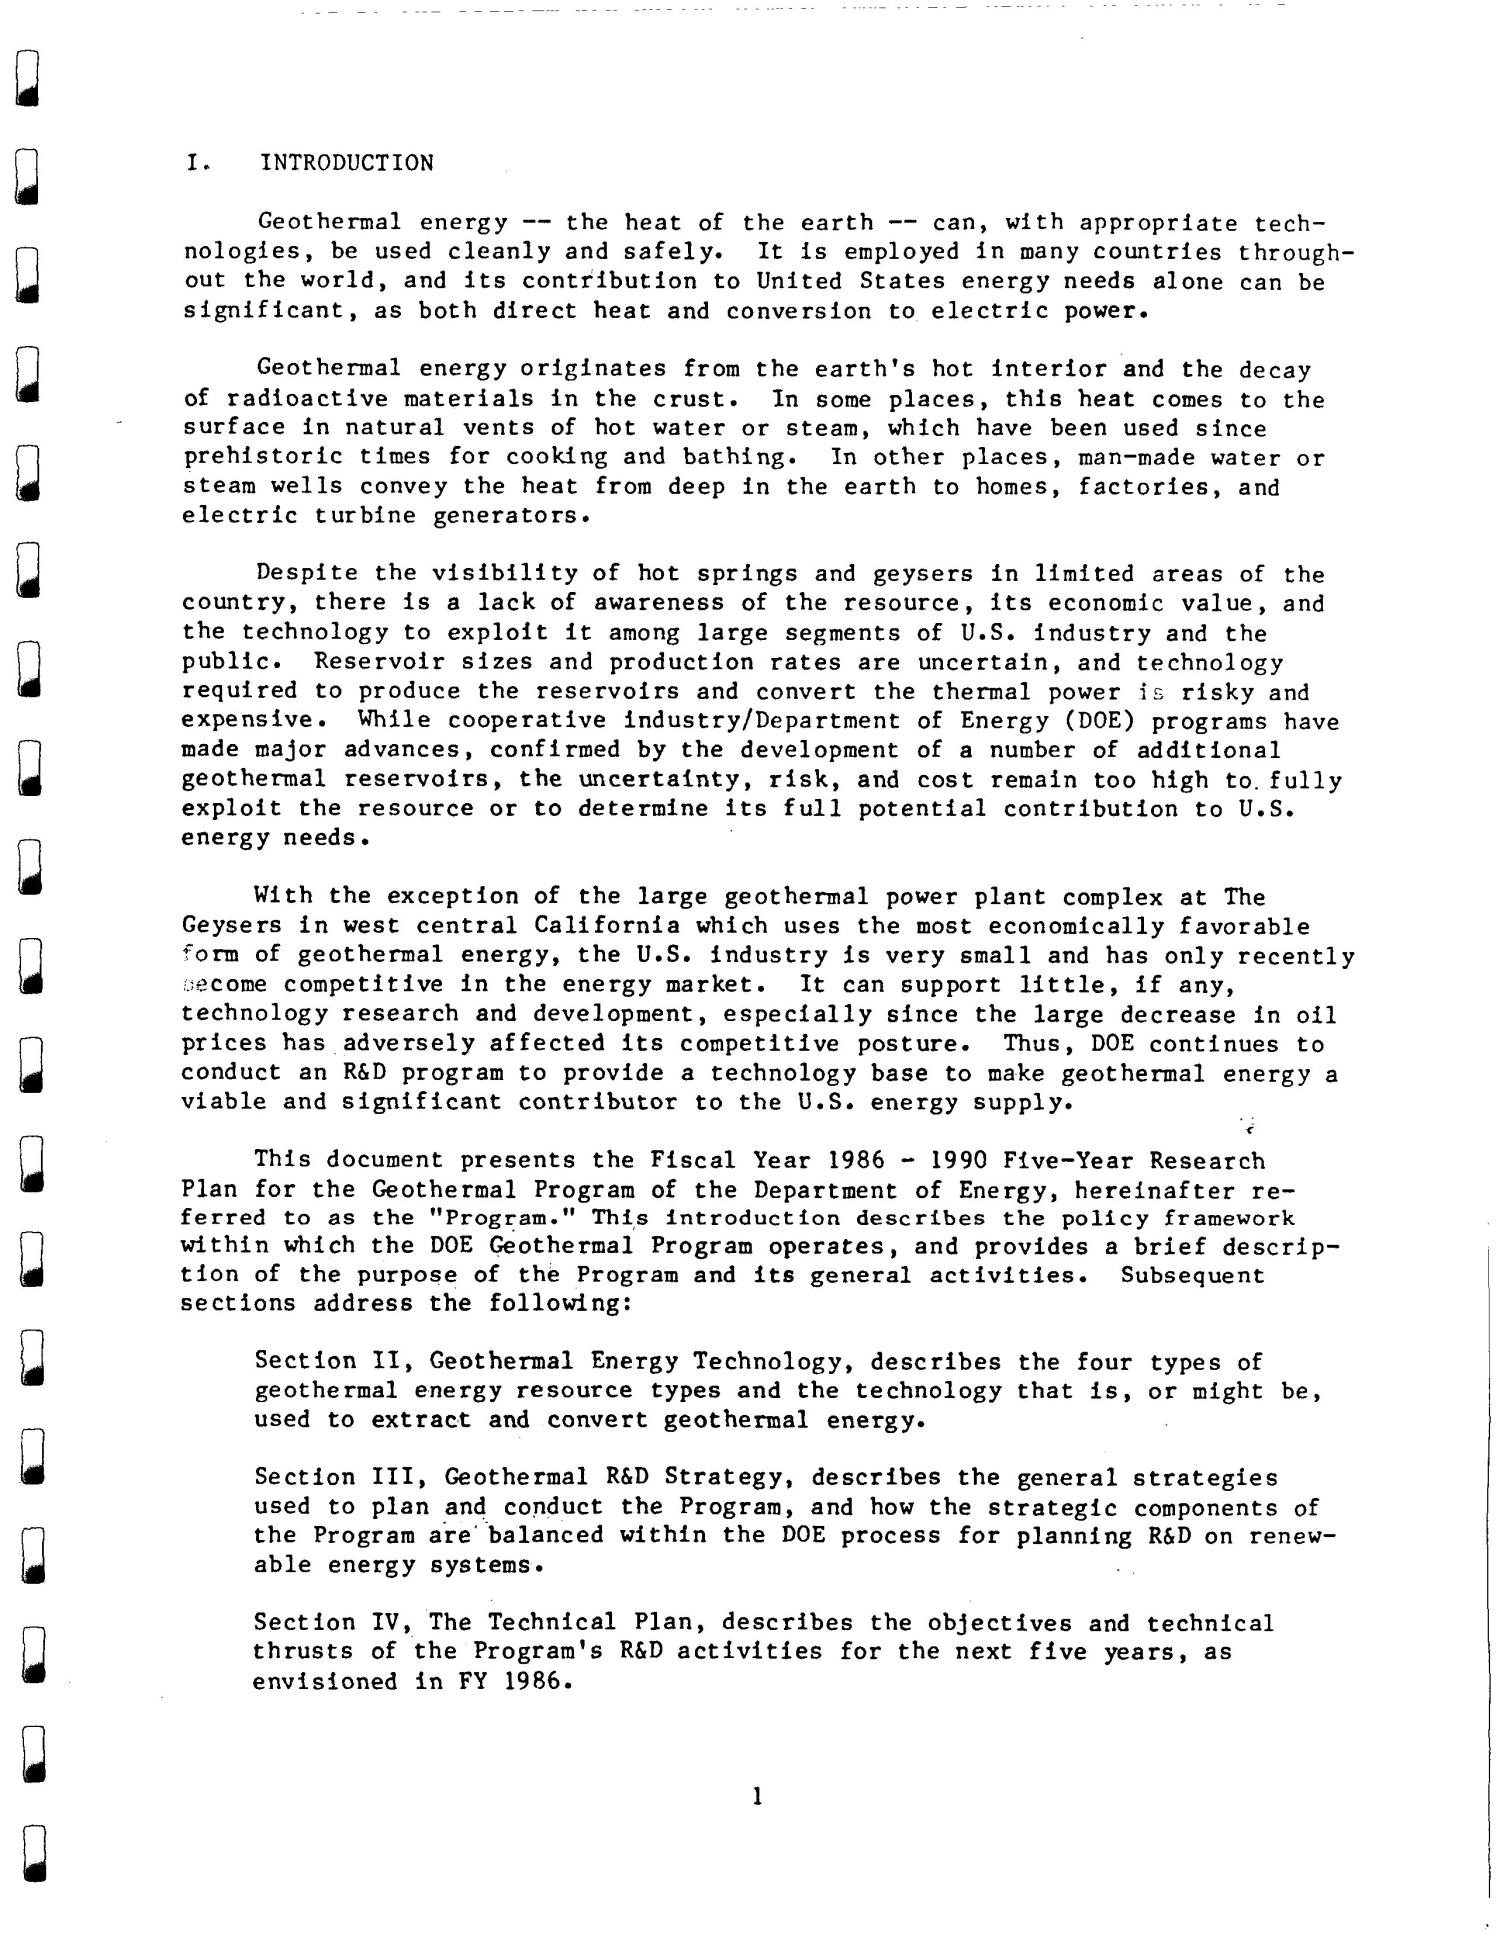 U.S Geothermal Energy Program five year research plan, 1986--1990. Draft of July 1986                                                                                                      [Sequence #]: 8 of 82